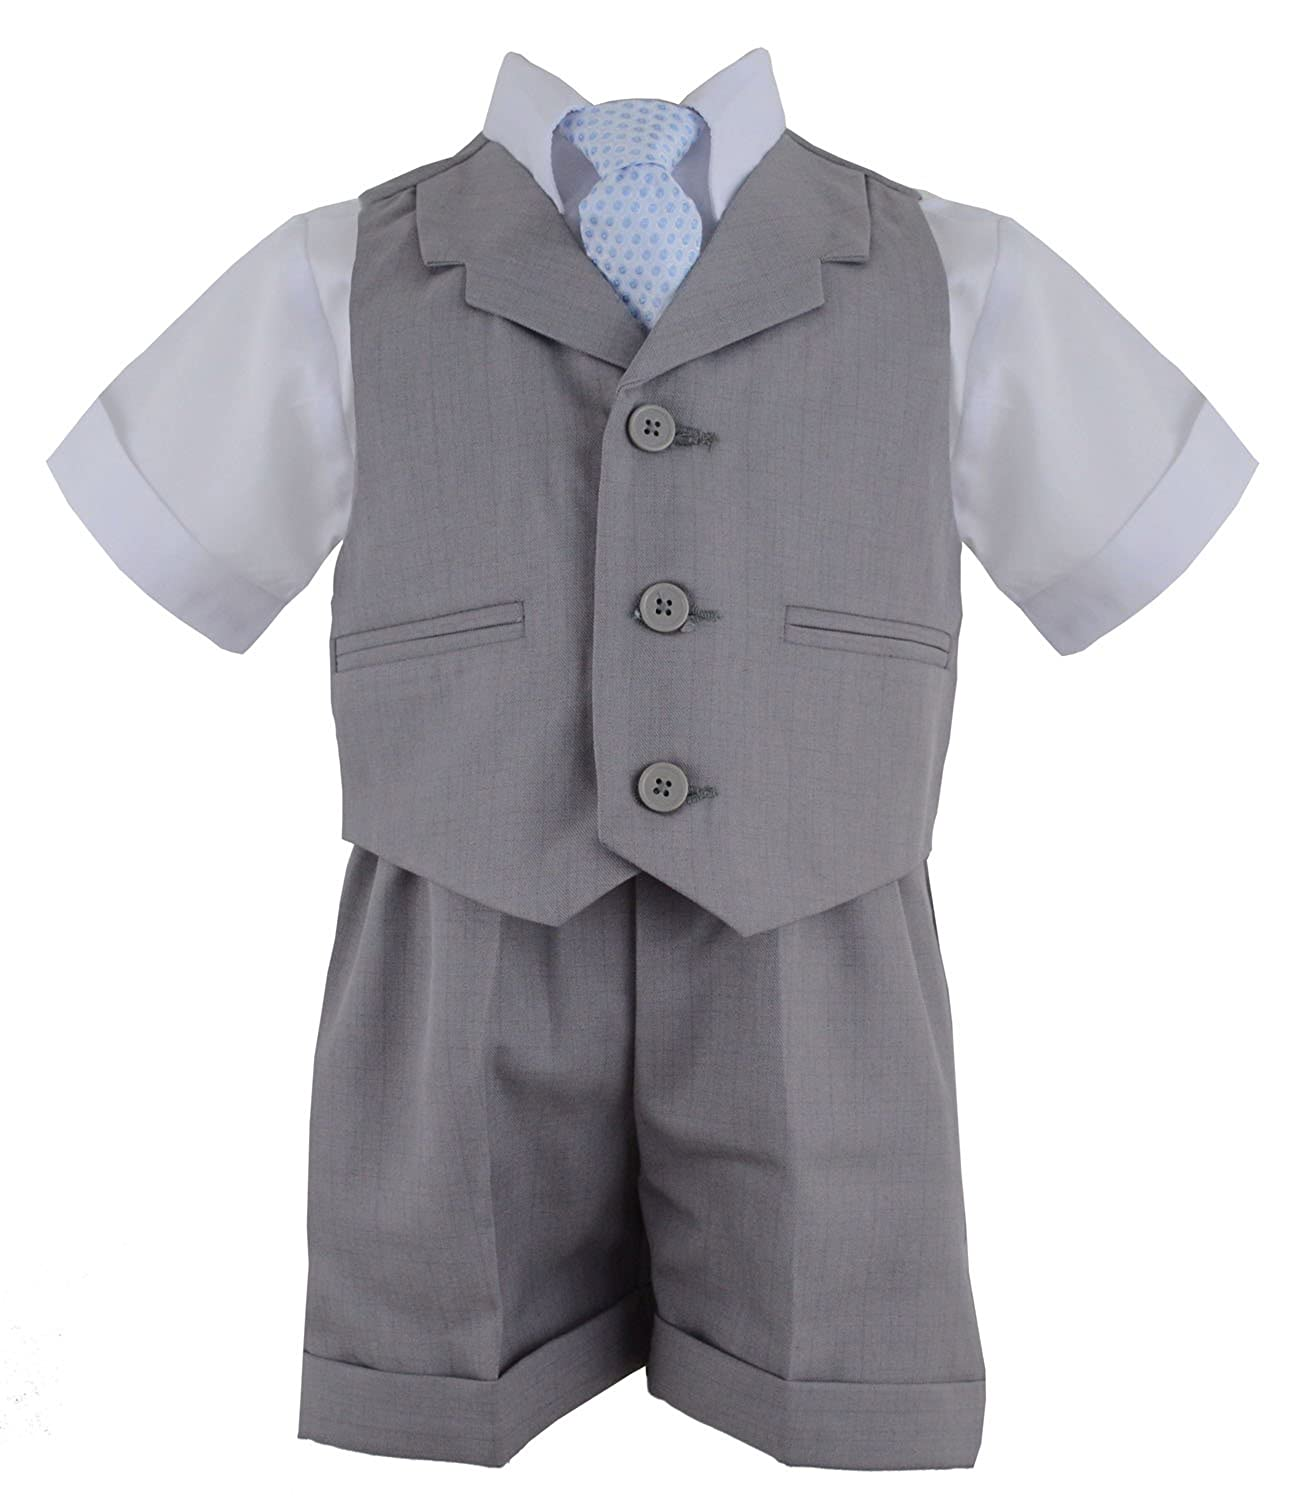 G240 Baby Toddler Boy Summer Suit Vest Short Set